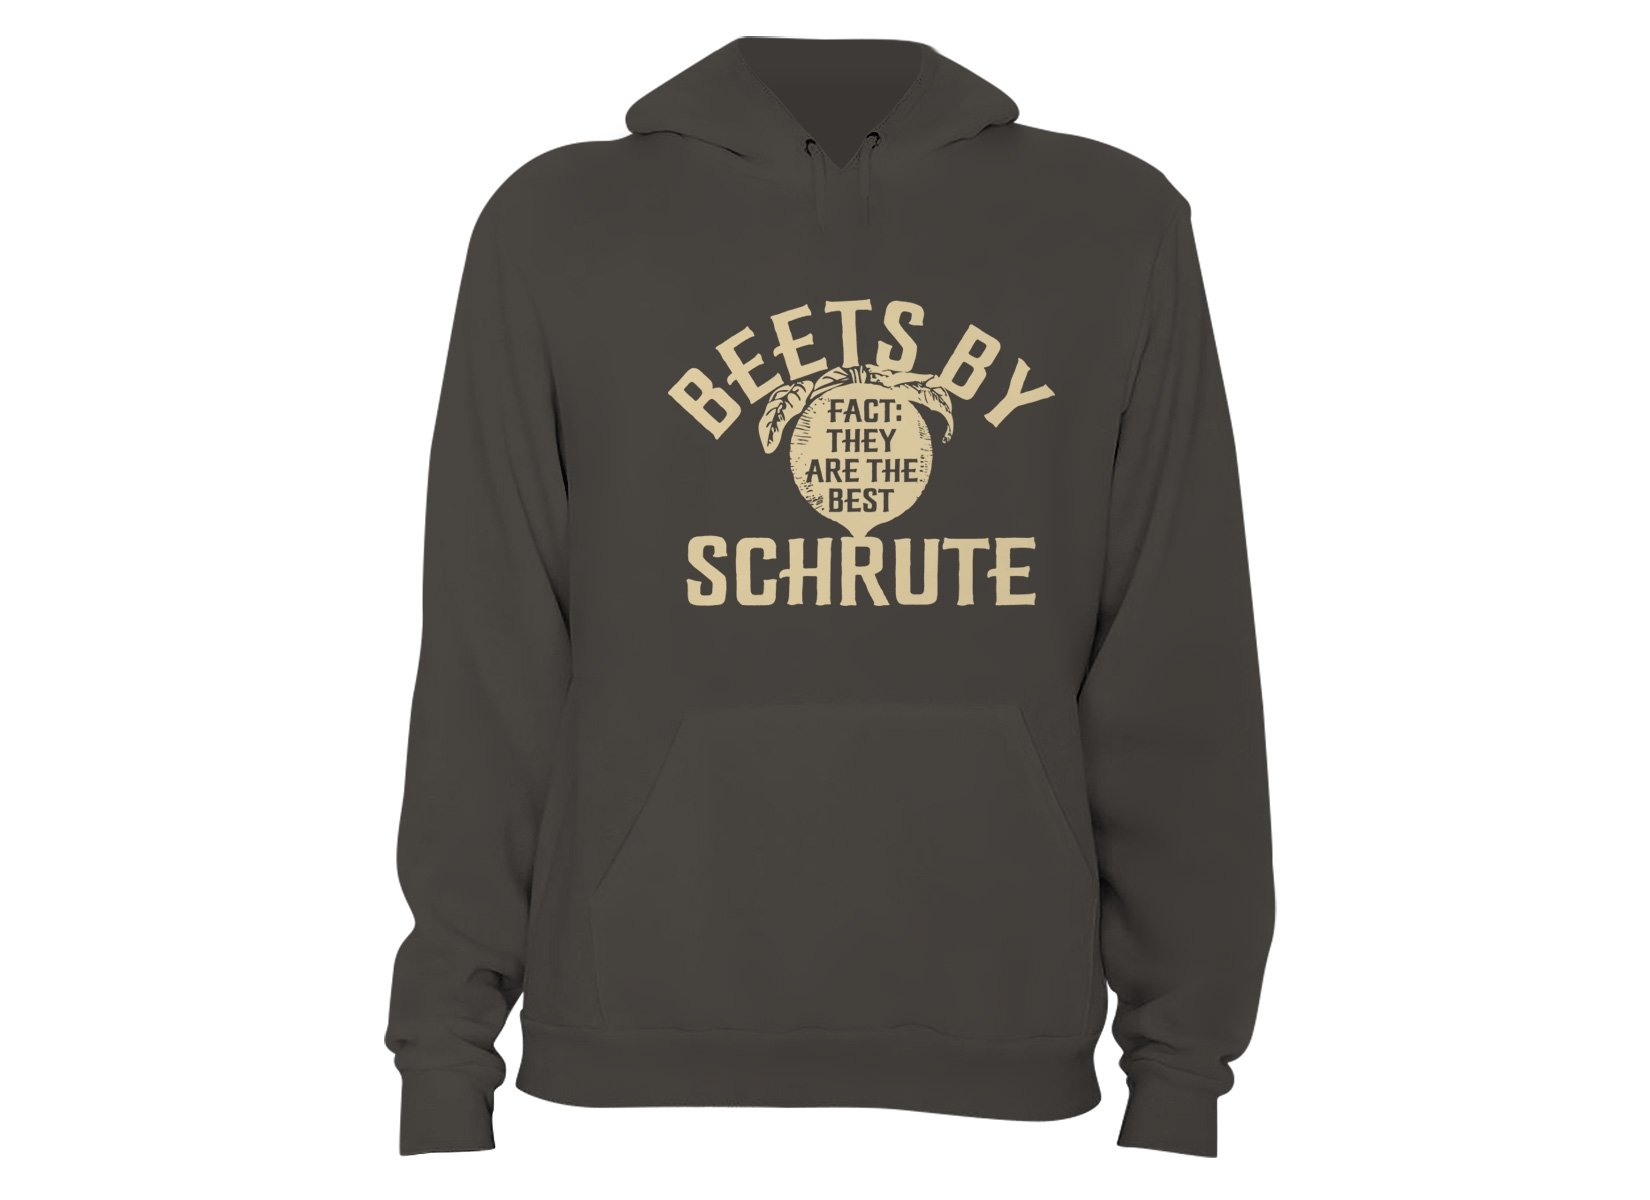 Beets By Schrute on Hoodie